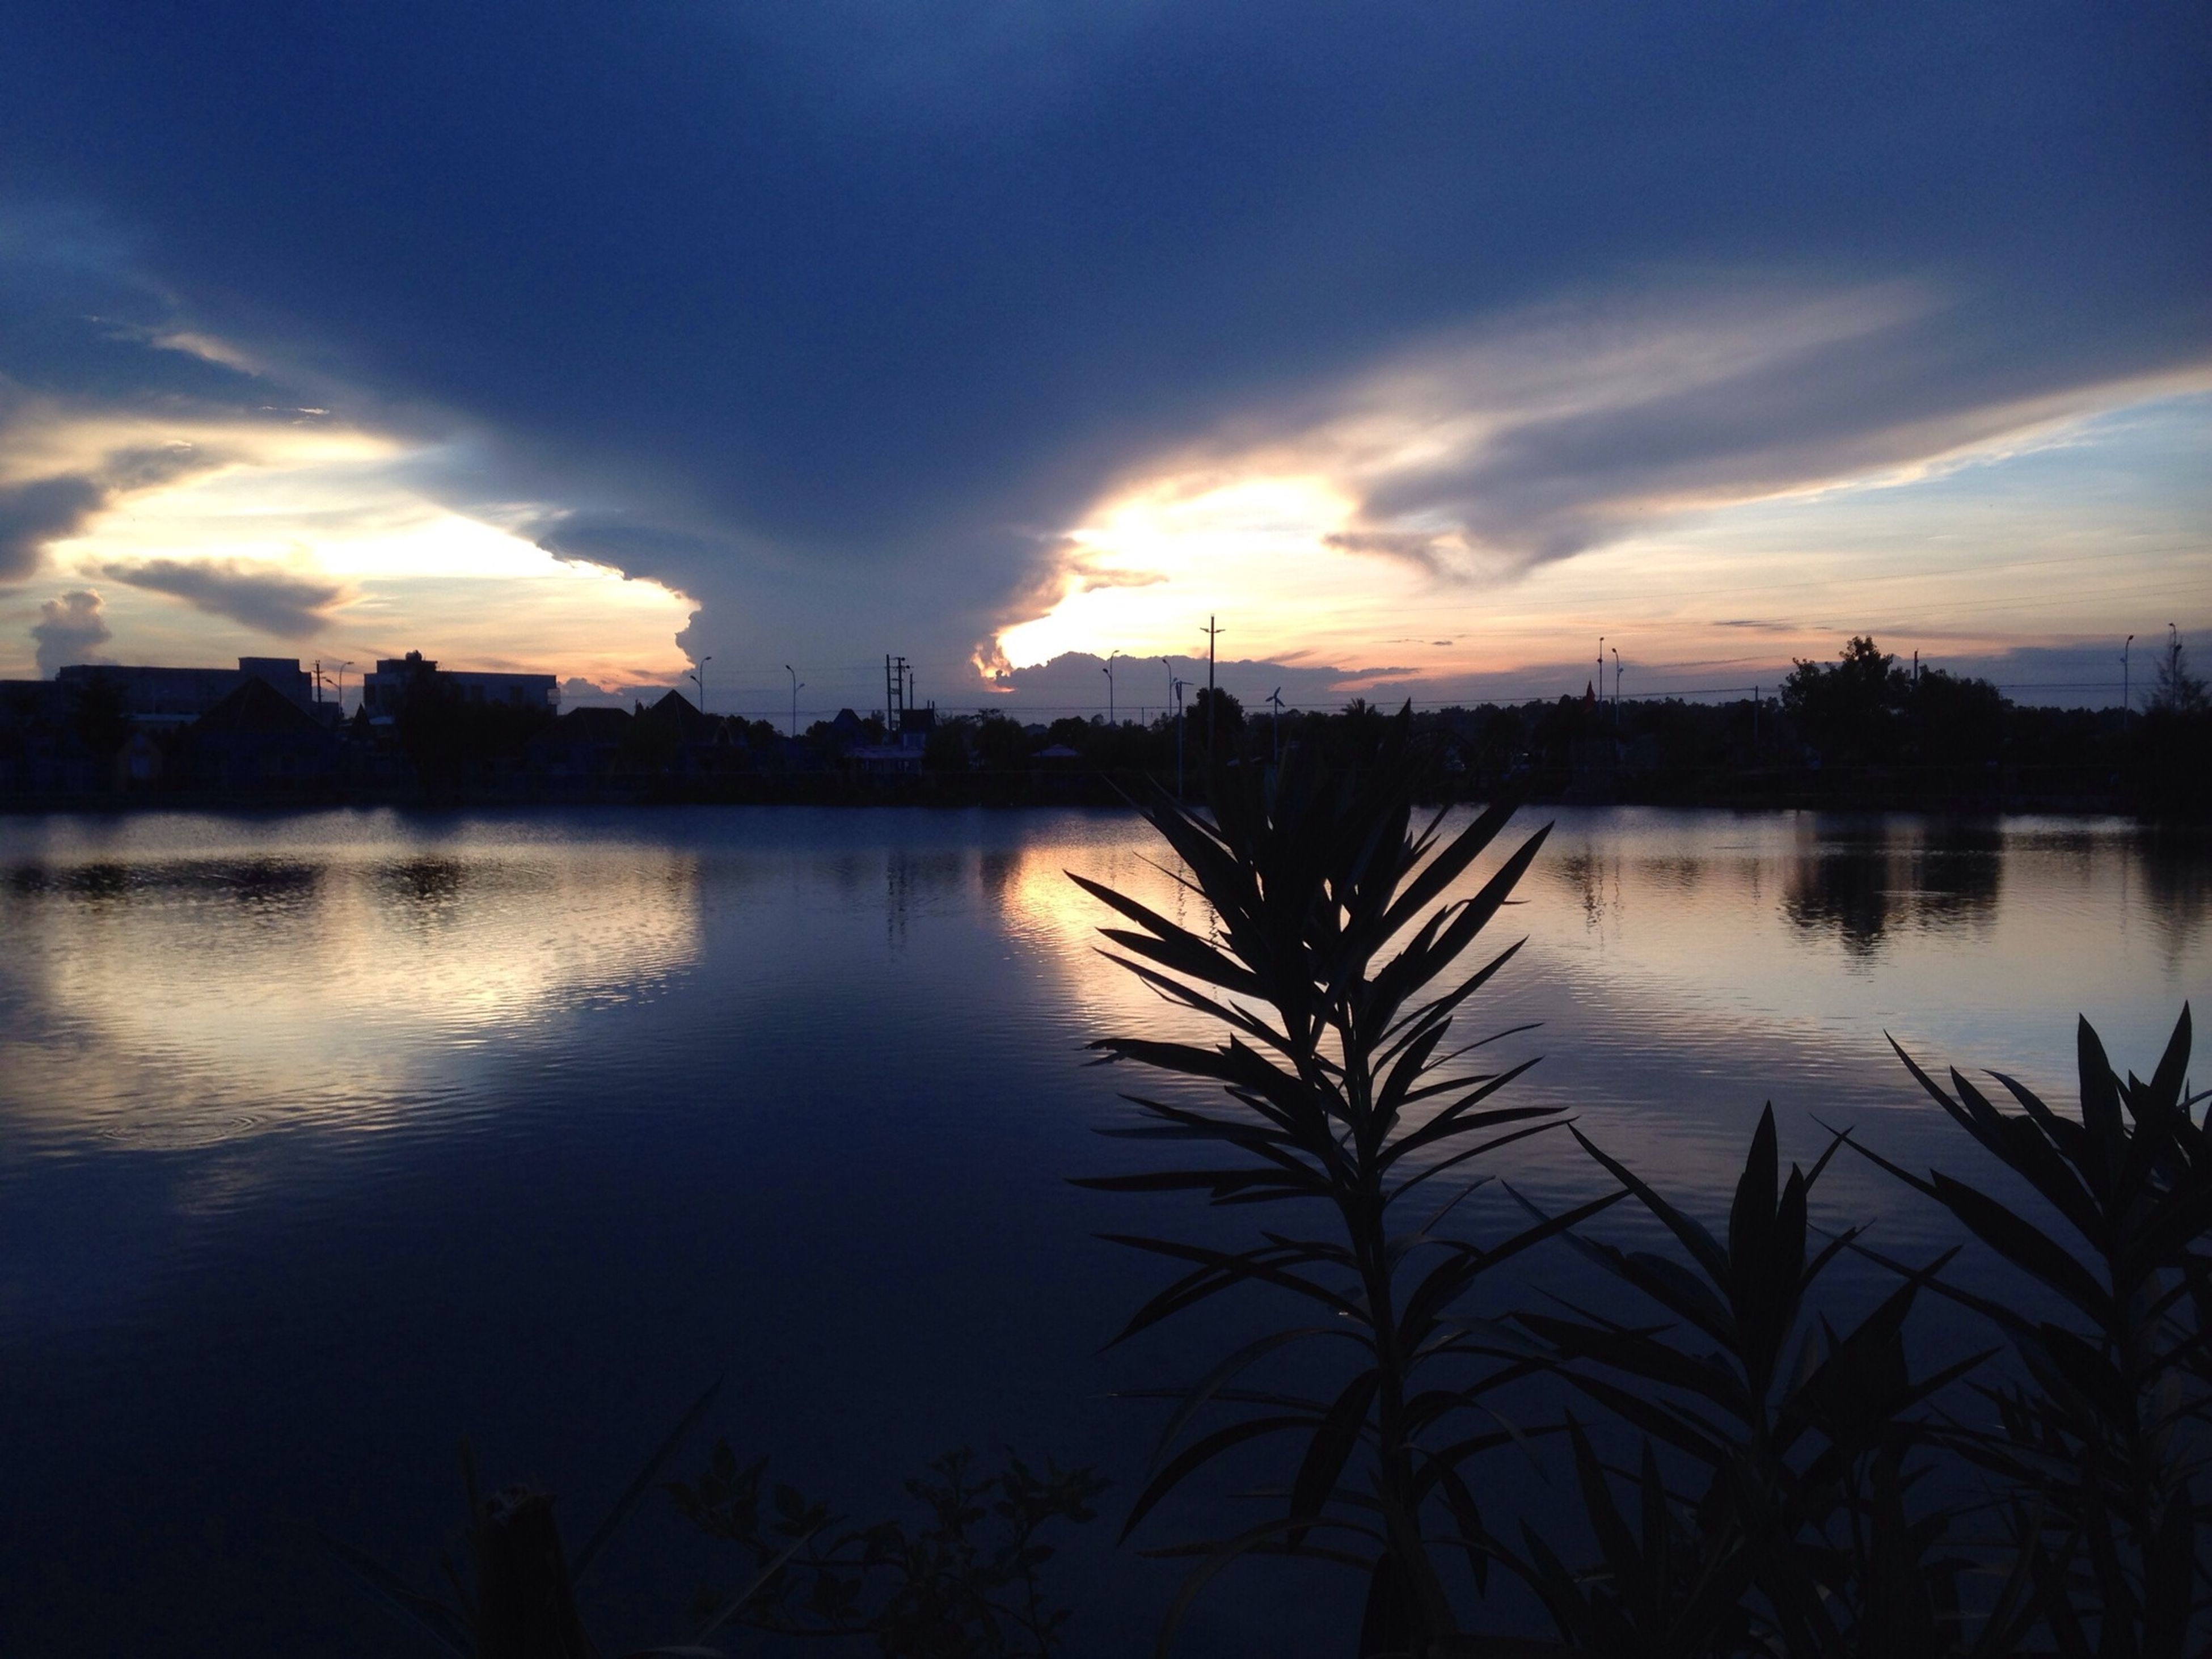 sunset, sky, water, silhouette, reflection, scenics, lake, tranquil scene, cloud - sky, tranquility, beauty in nature, cloud, nature, idyllic, dusk, river, waterfront, tree, no people, outdoors